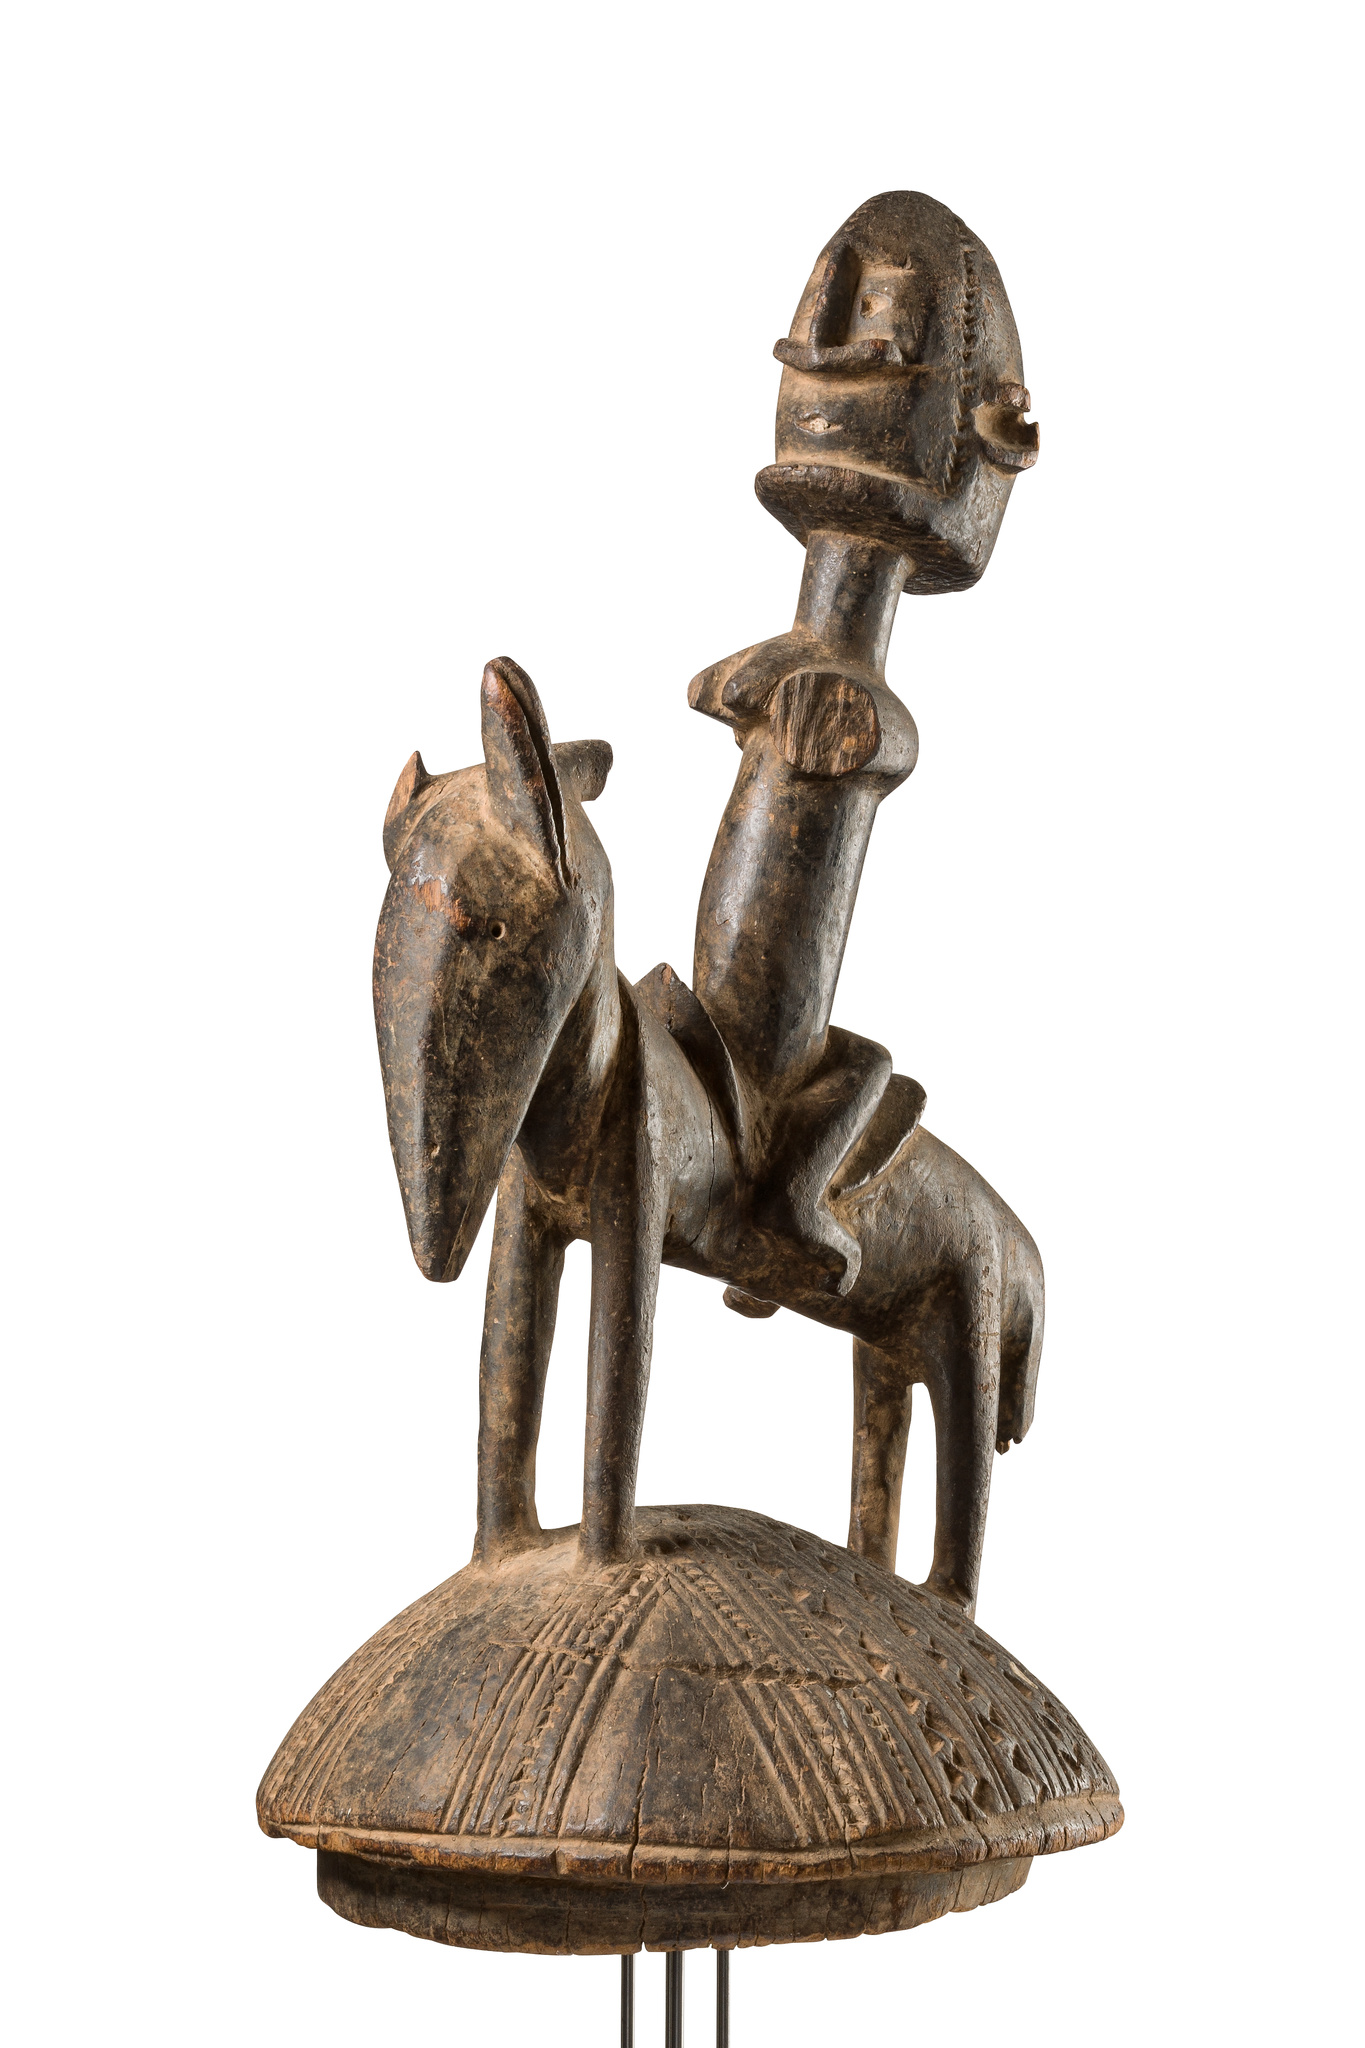 Lid of a ritual vessel with equestrian figure